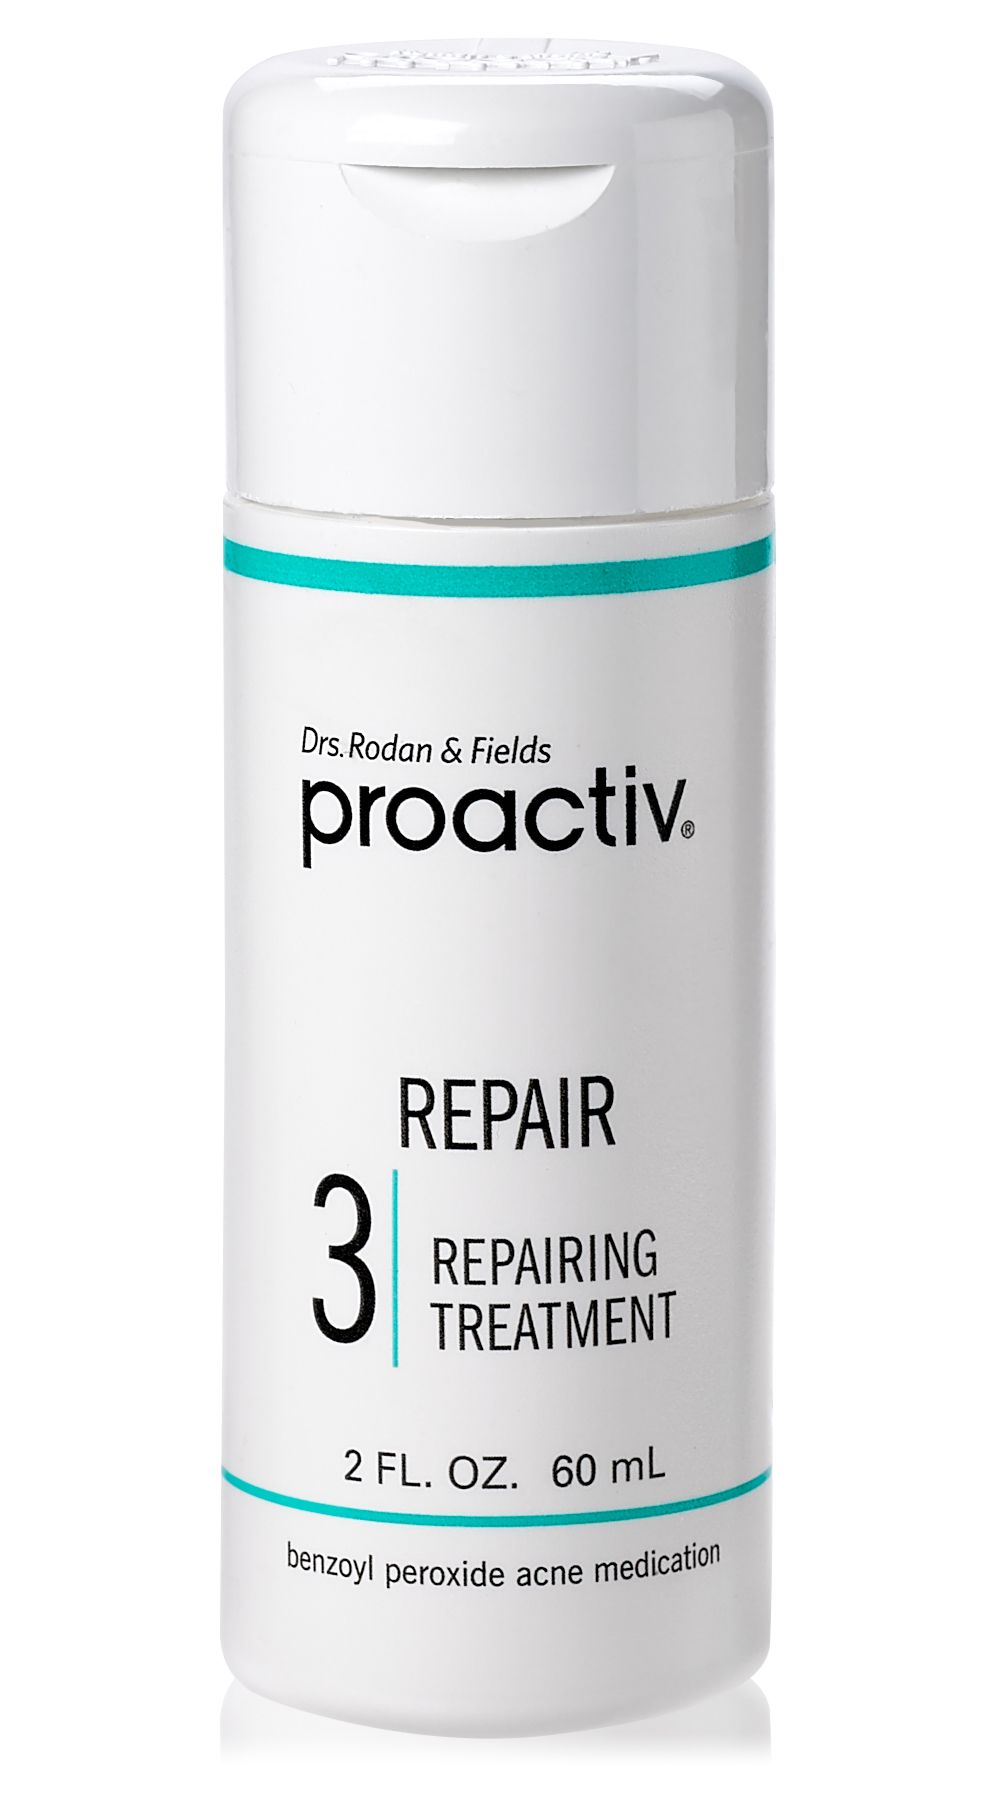 Proactiv 42 Value Proactiv Repairing Benzoyl Peroxide Acne Treatment 2 Oz Walmart Com Walmart Com